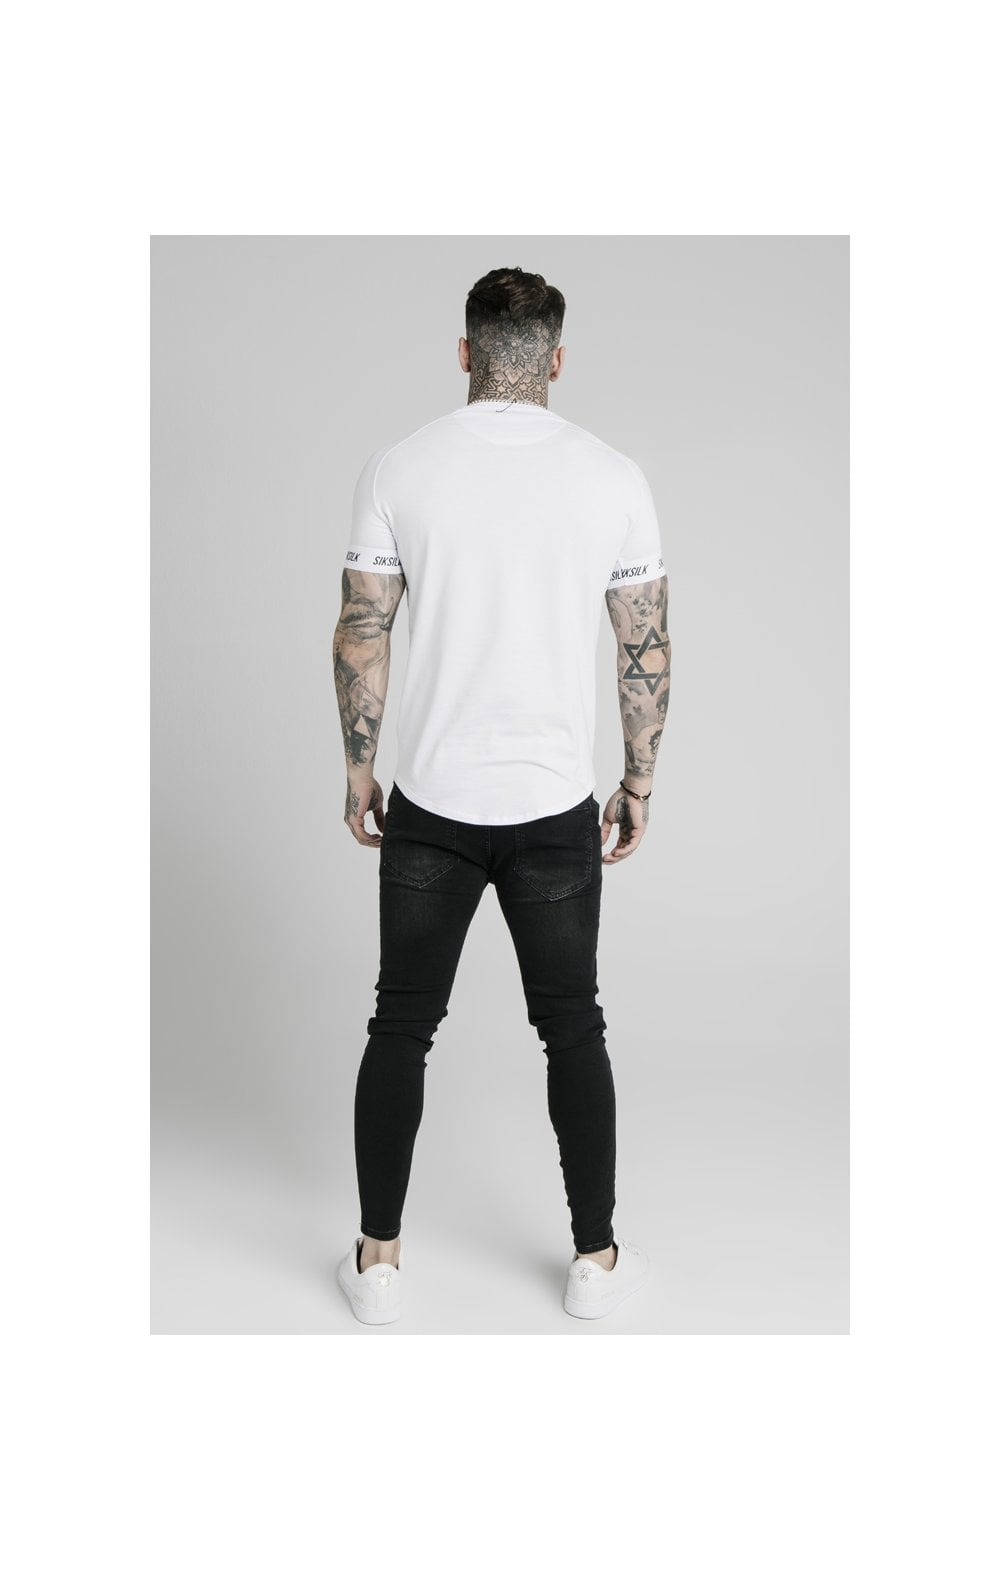 SikSilk S/S Raglan Tech Tee - White (4)